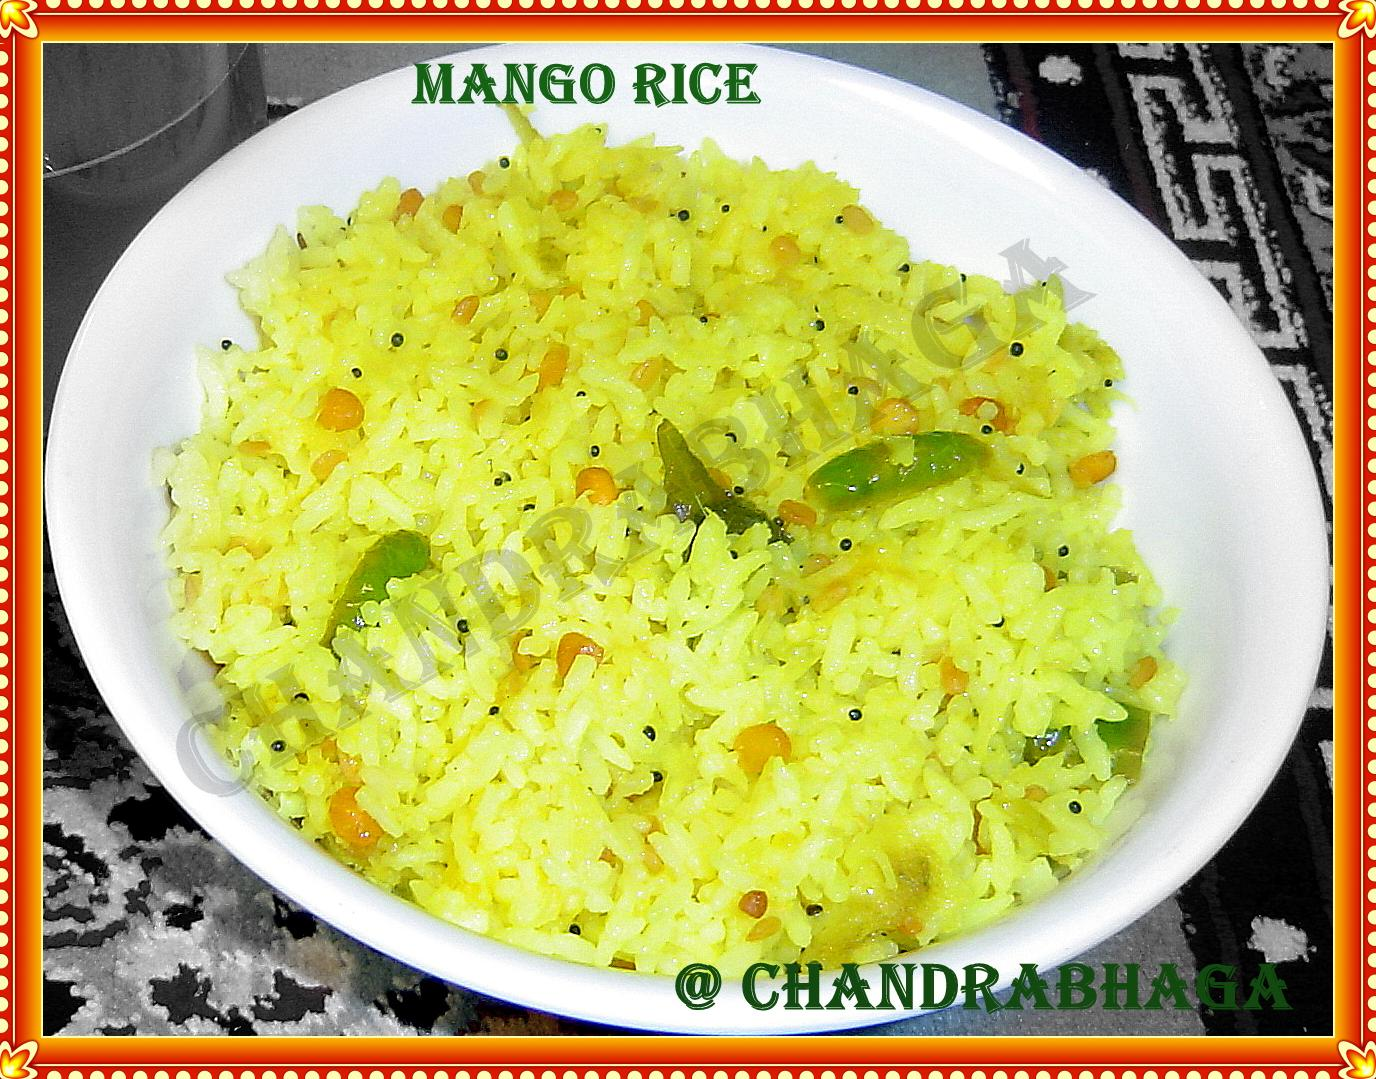 green mango rice madame scientist s not raw mango rice green mango ...